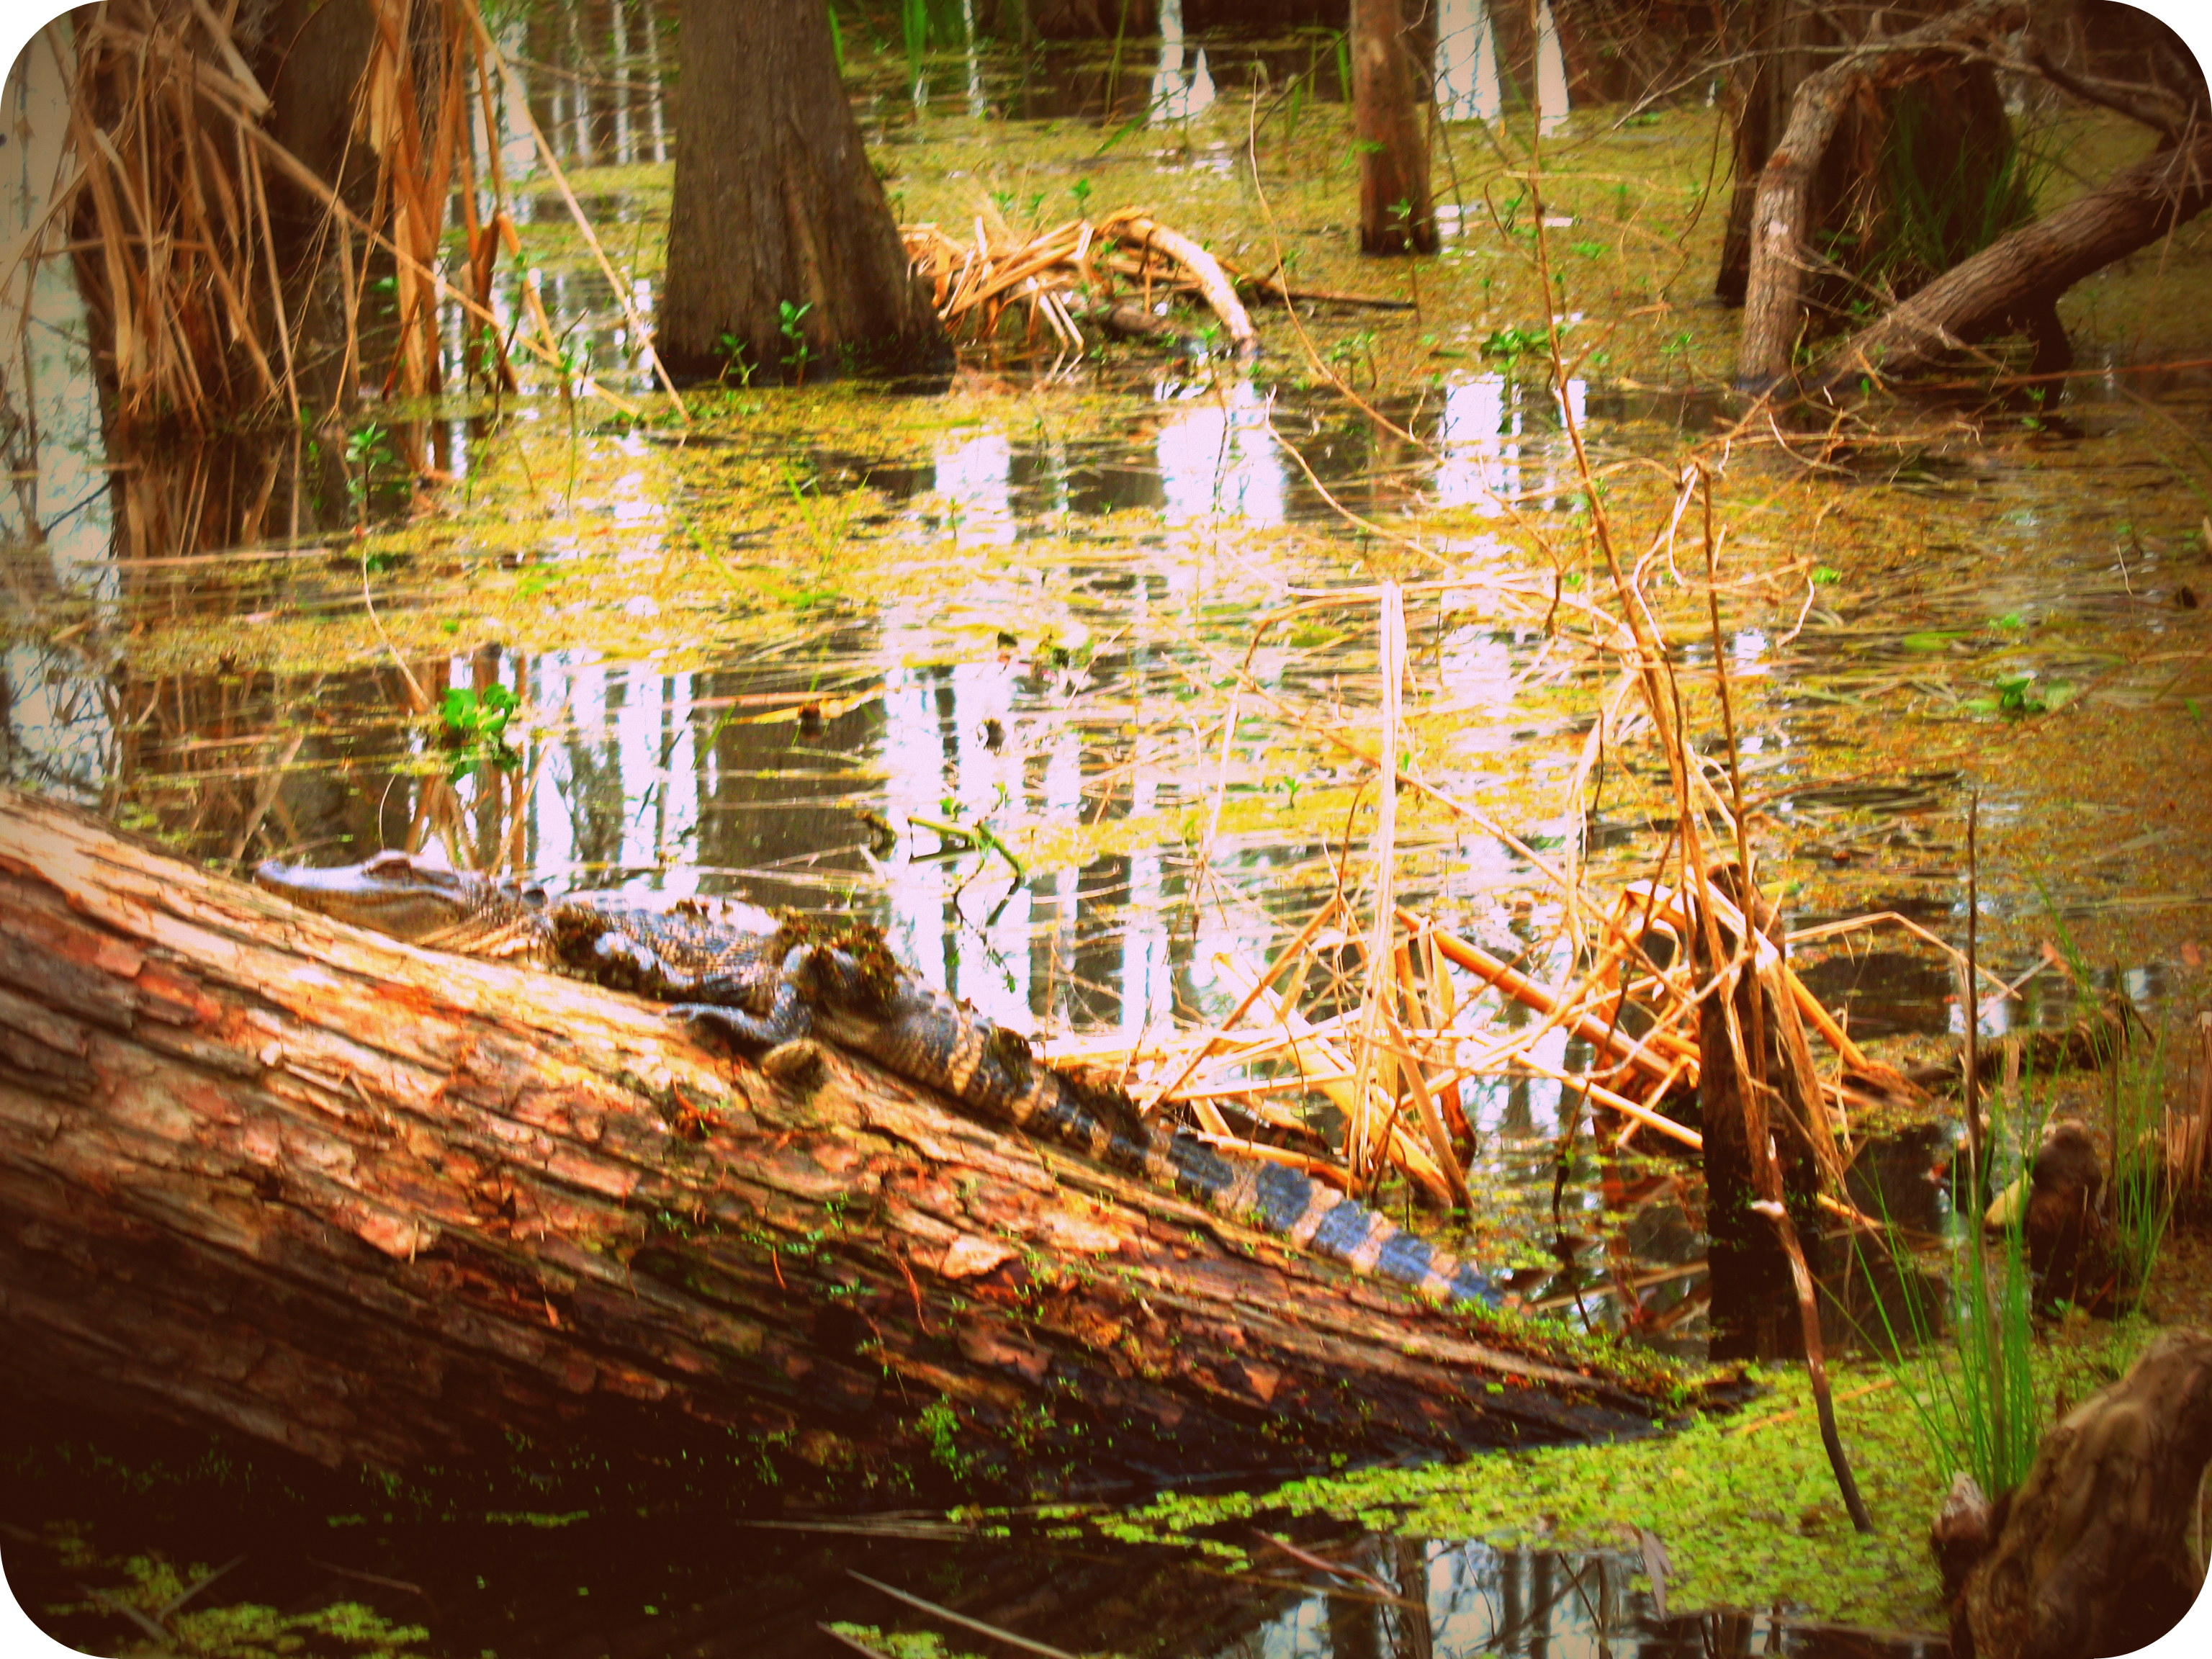 Checking out the gators in the Louisiana Swamp